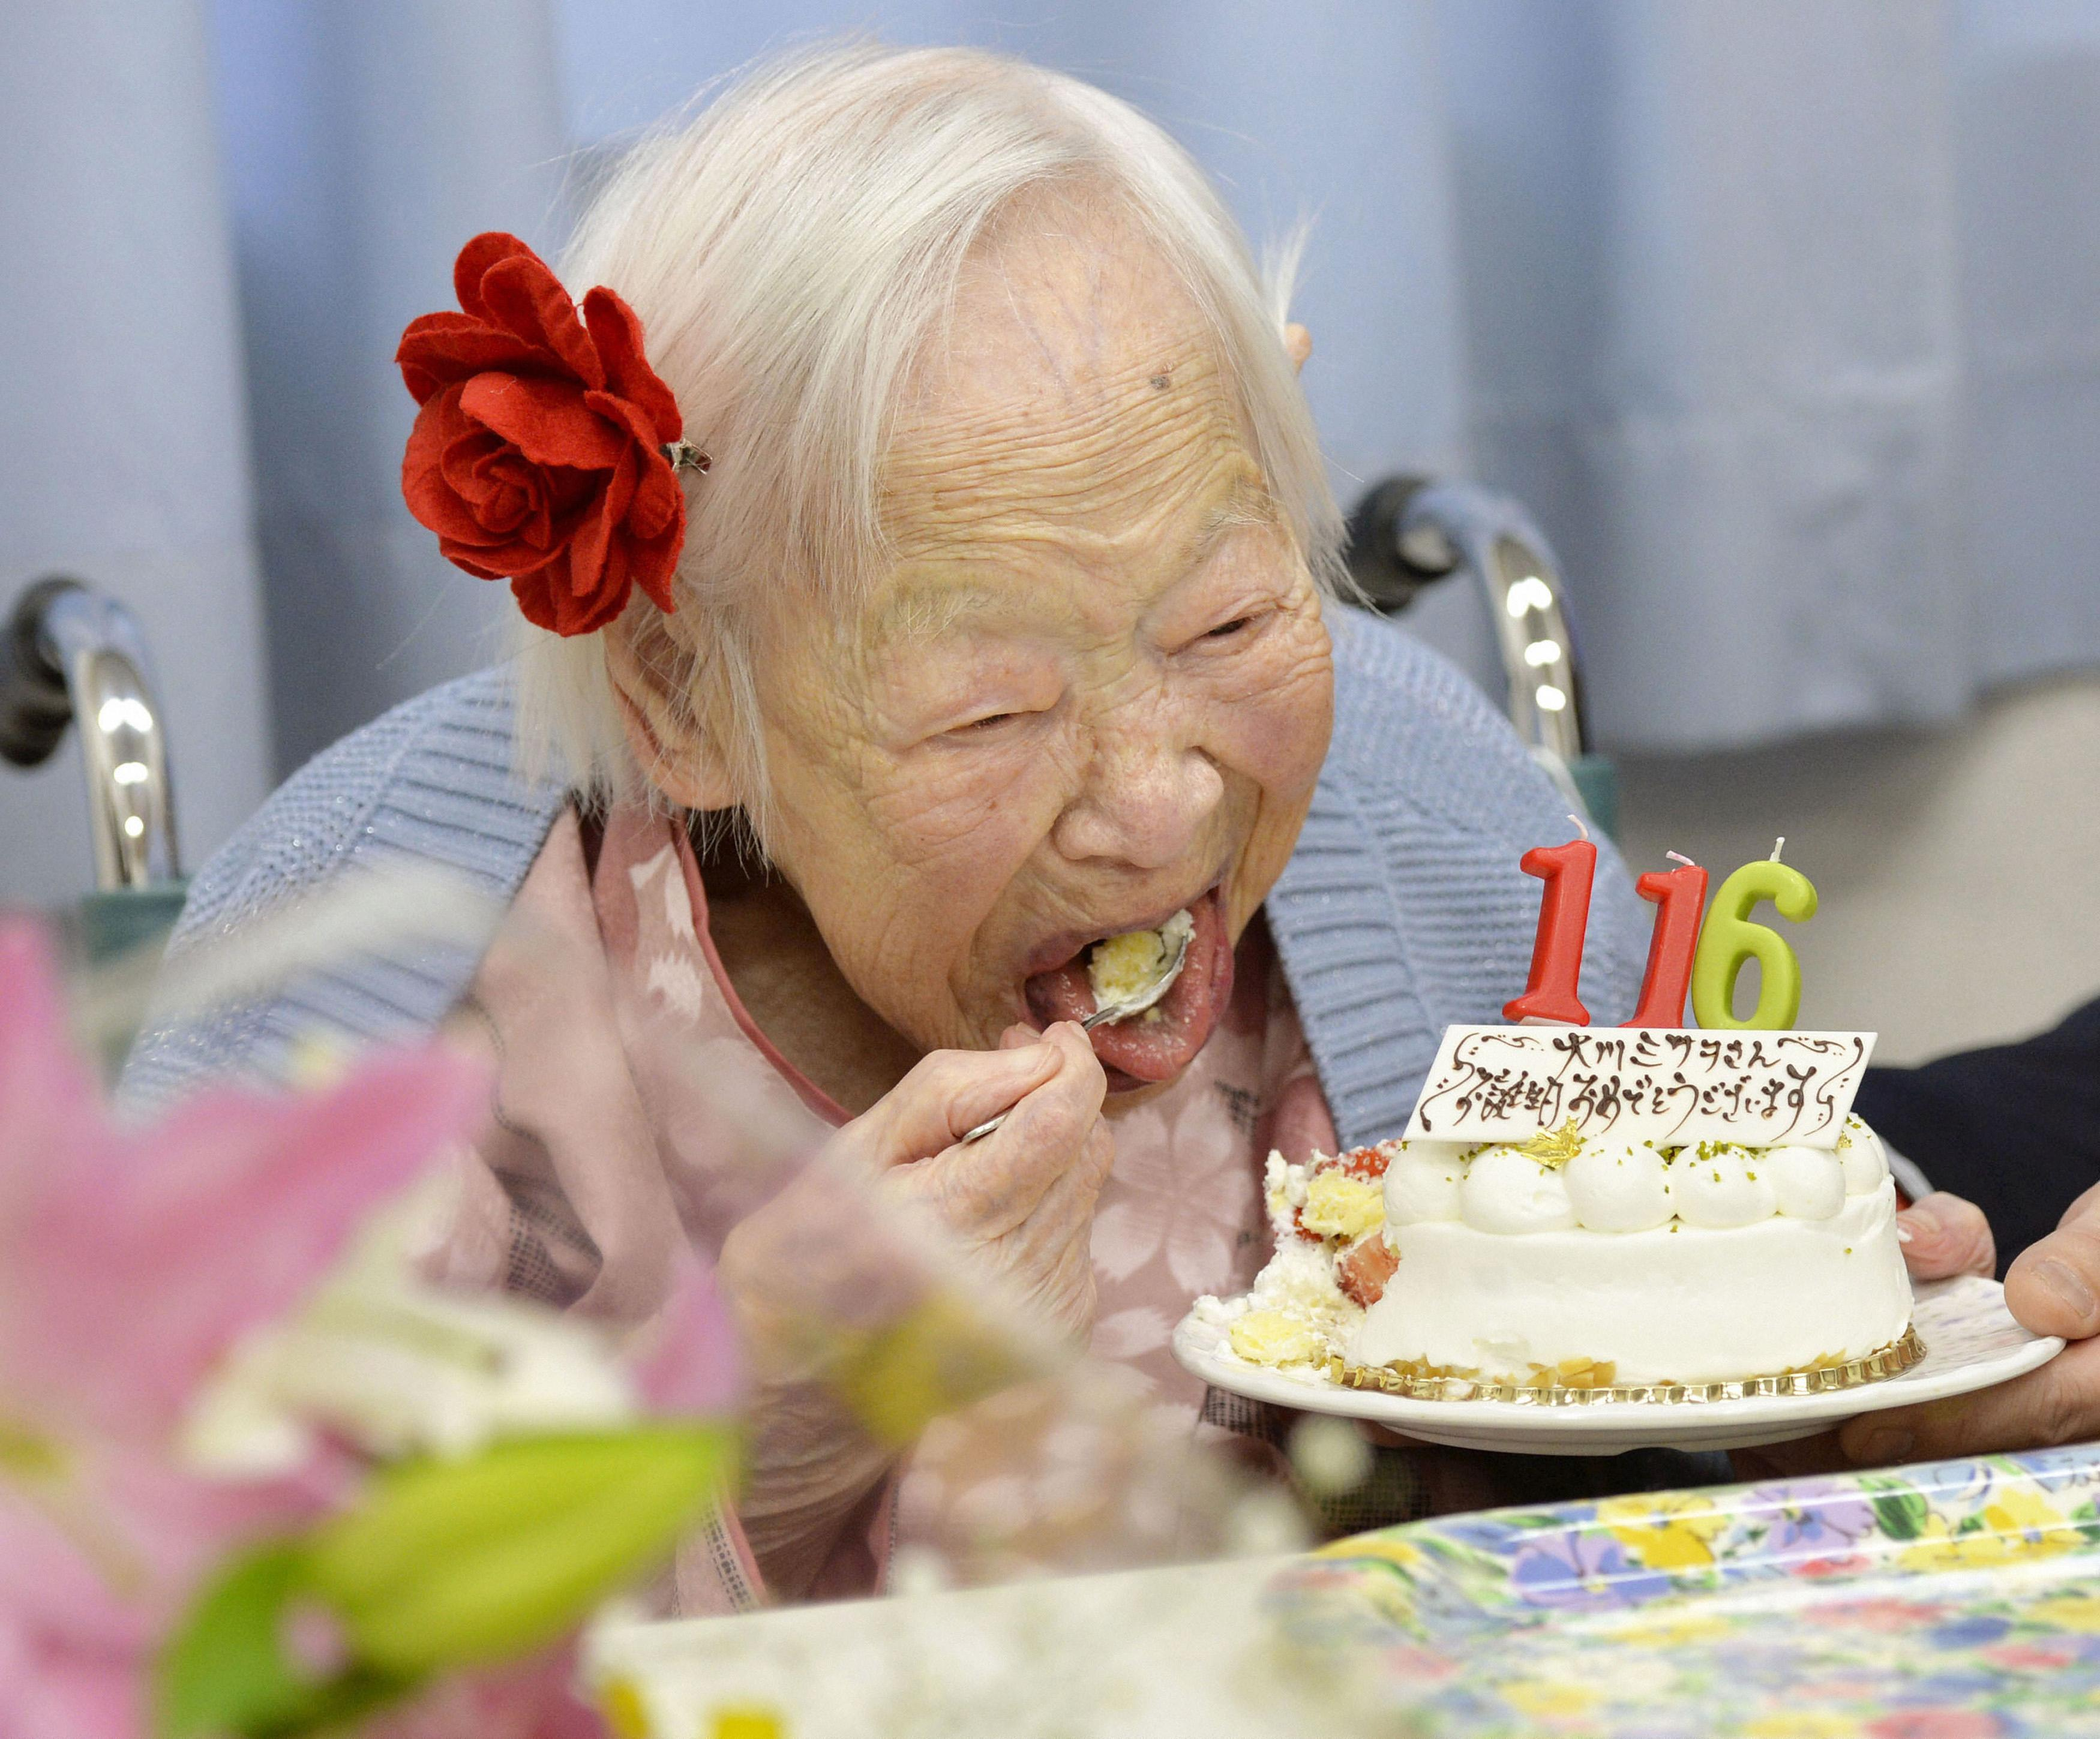 Misao Okawa, the World's Oldest Woman